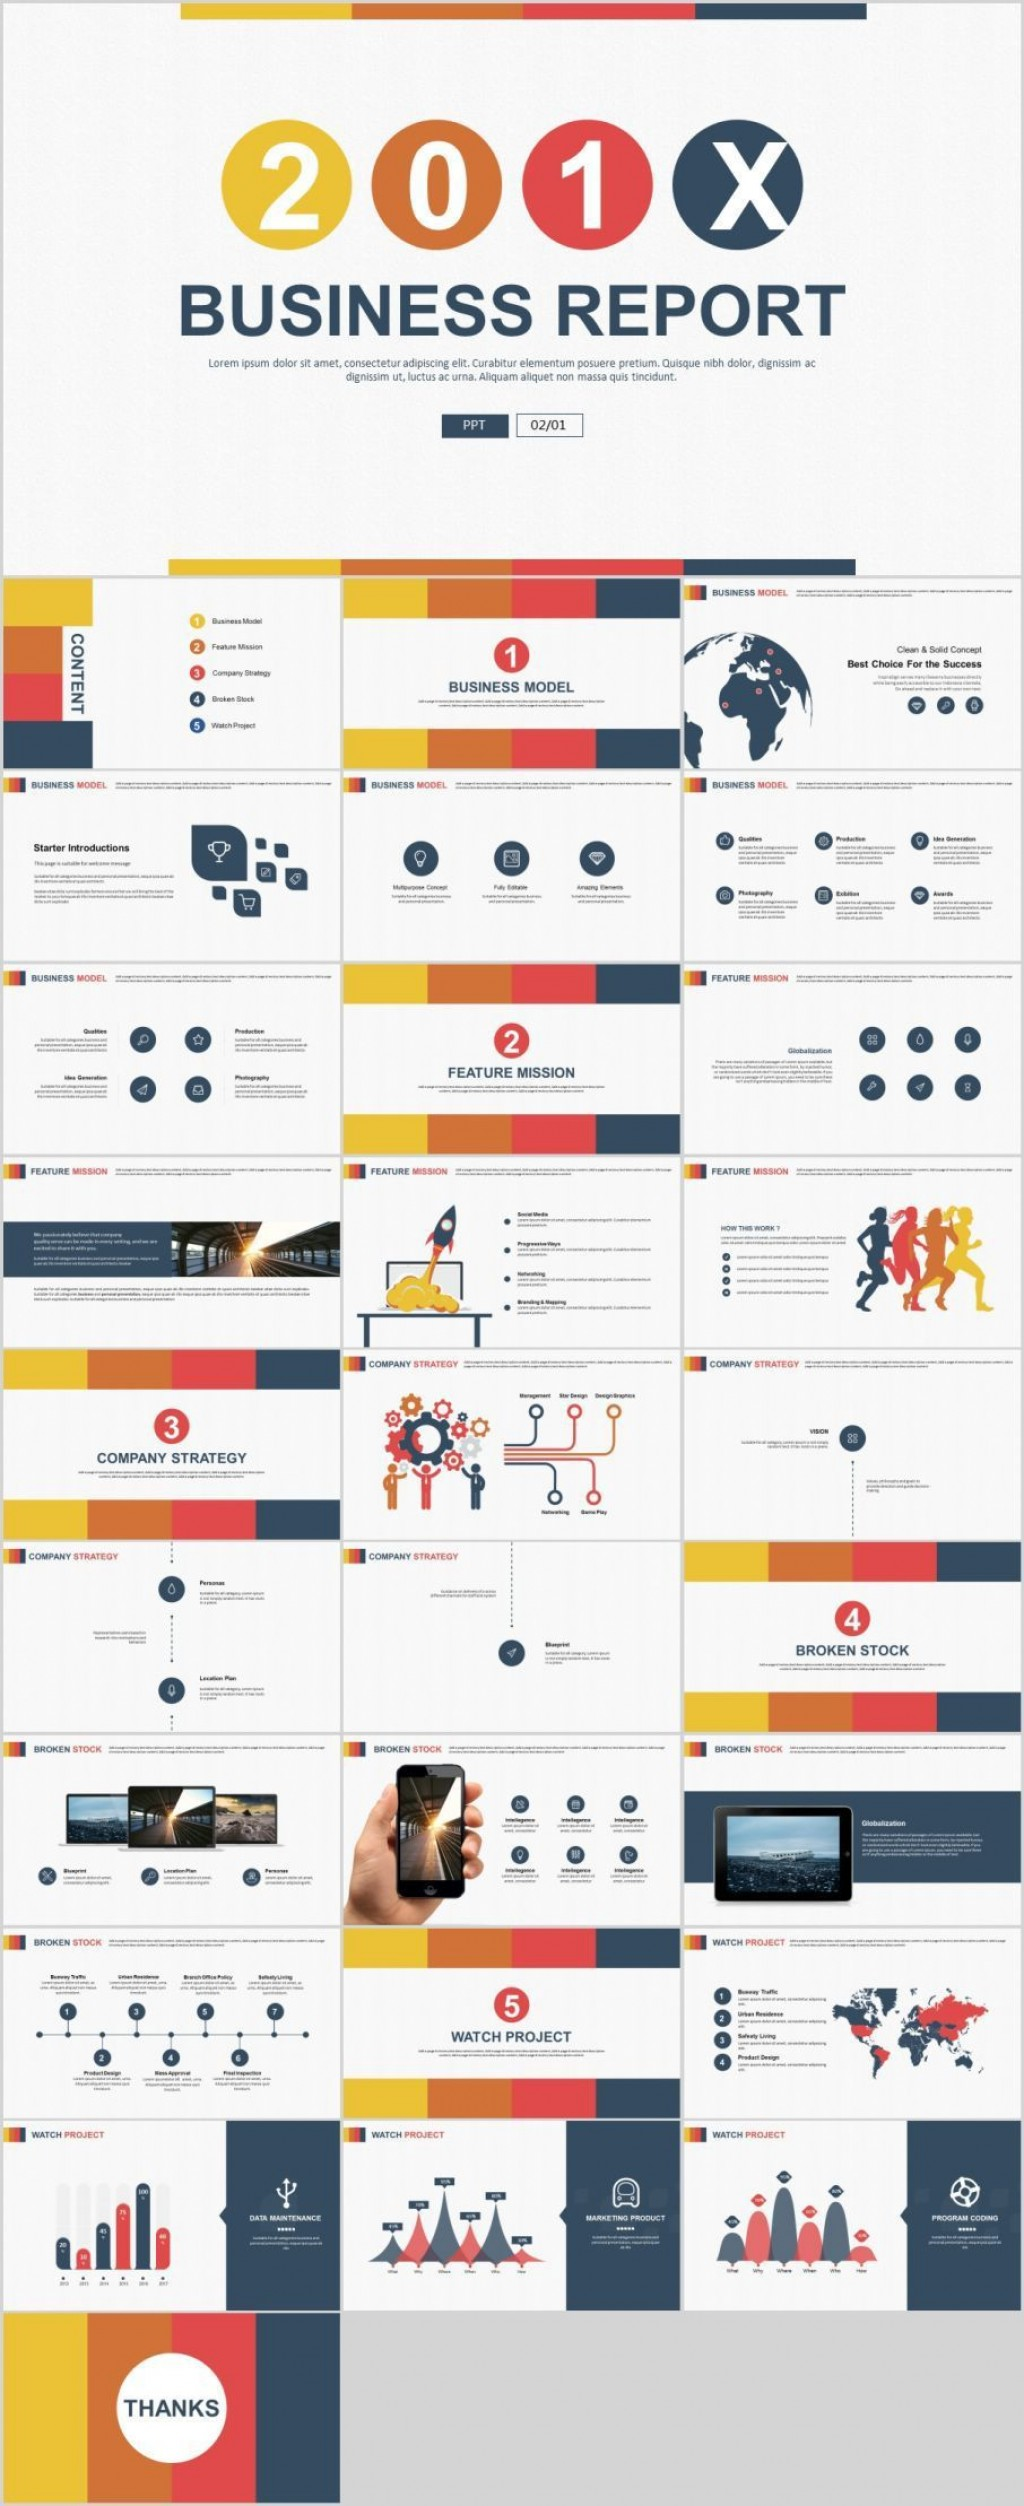 003 Remarkable Timeline Template Presentationgo Idea Large